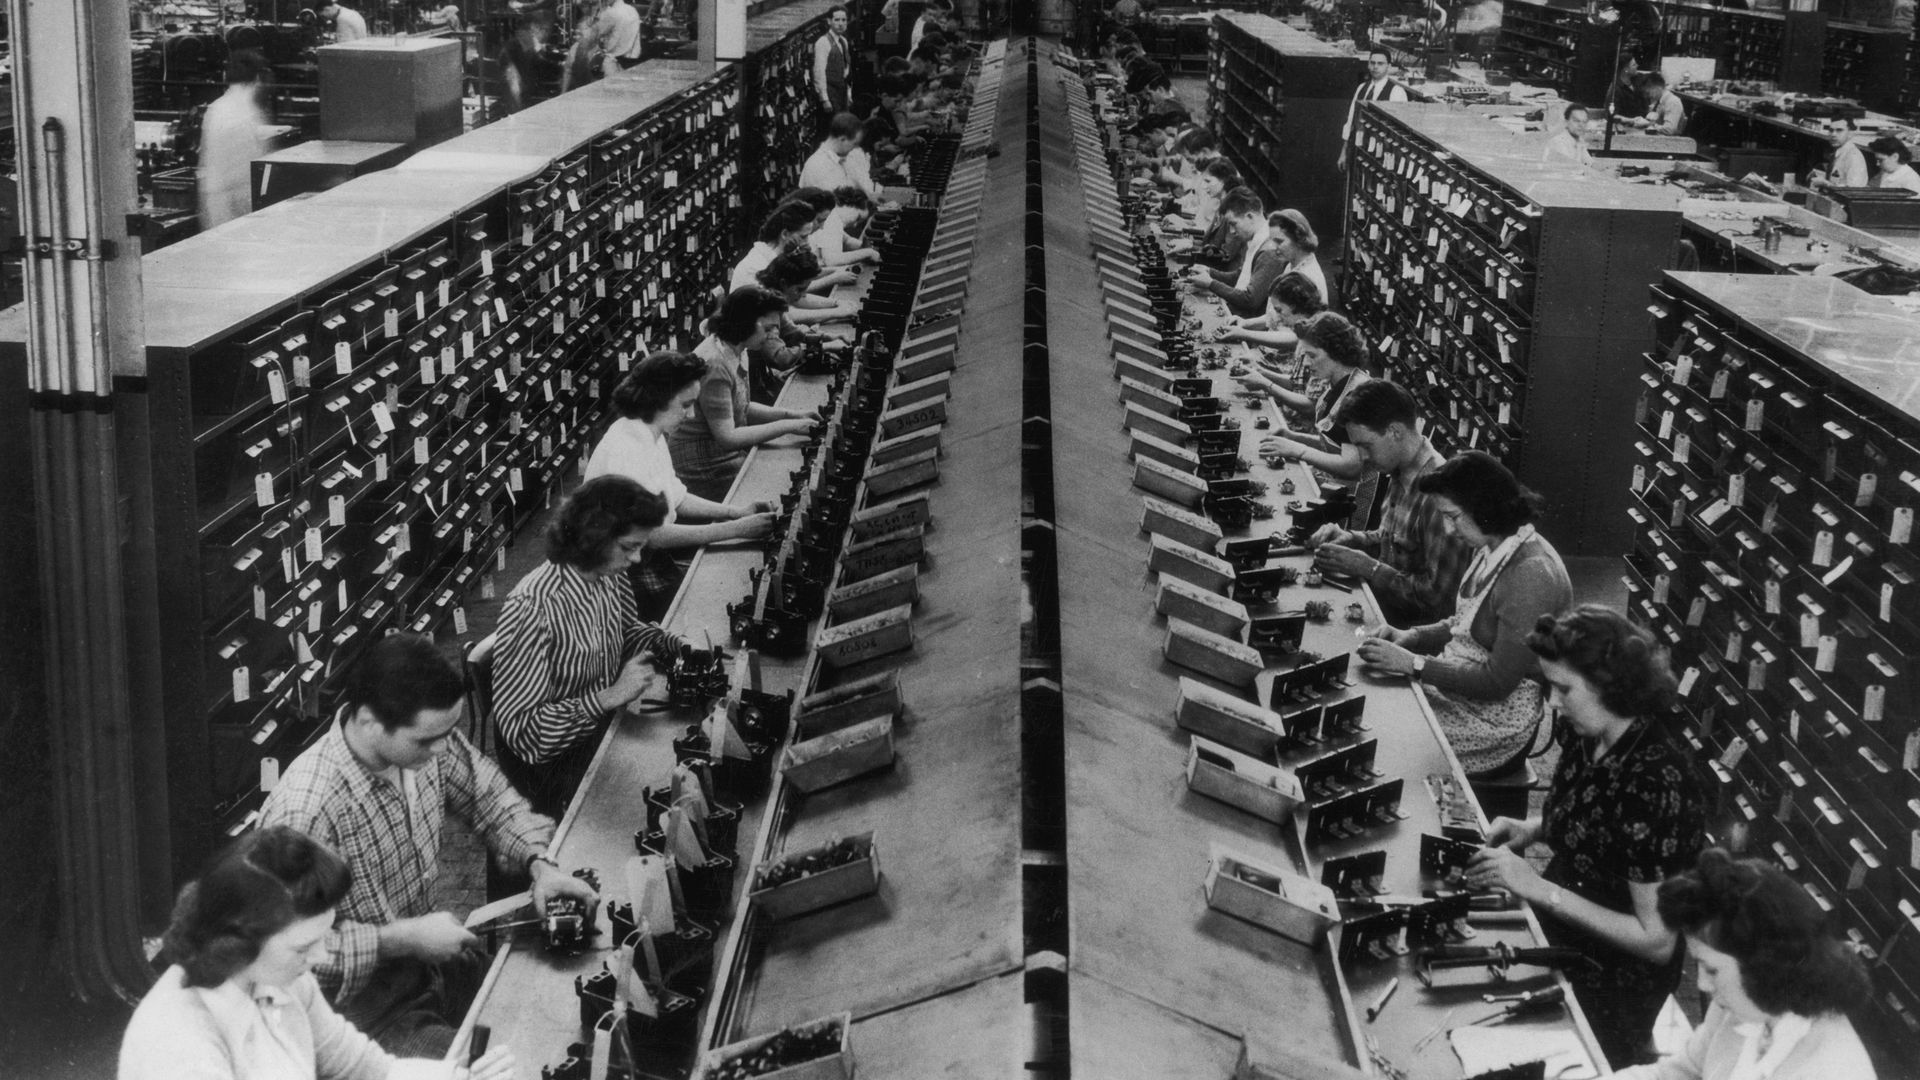 Workers in assembly line